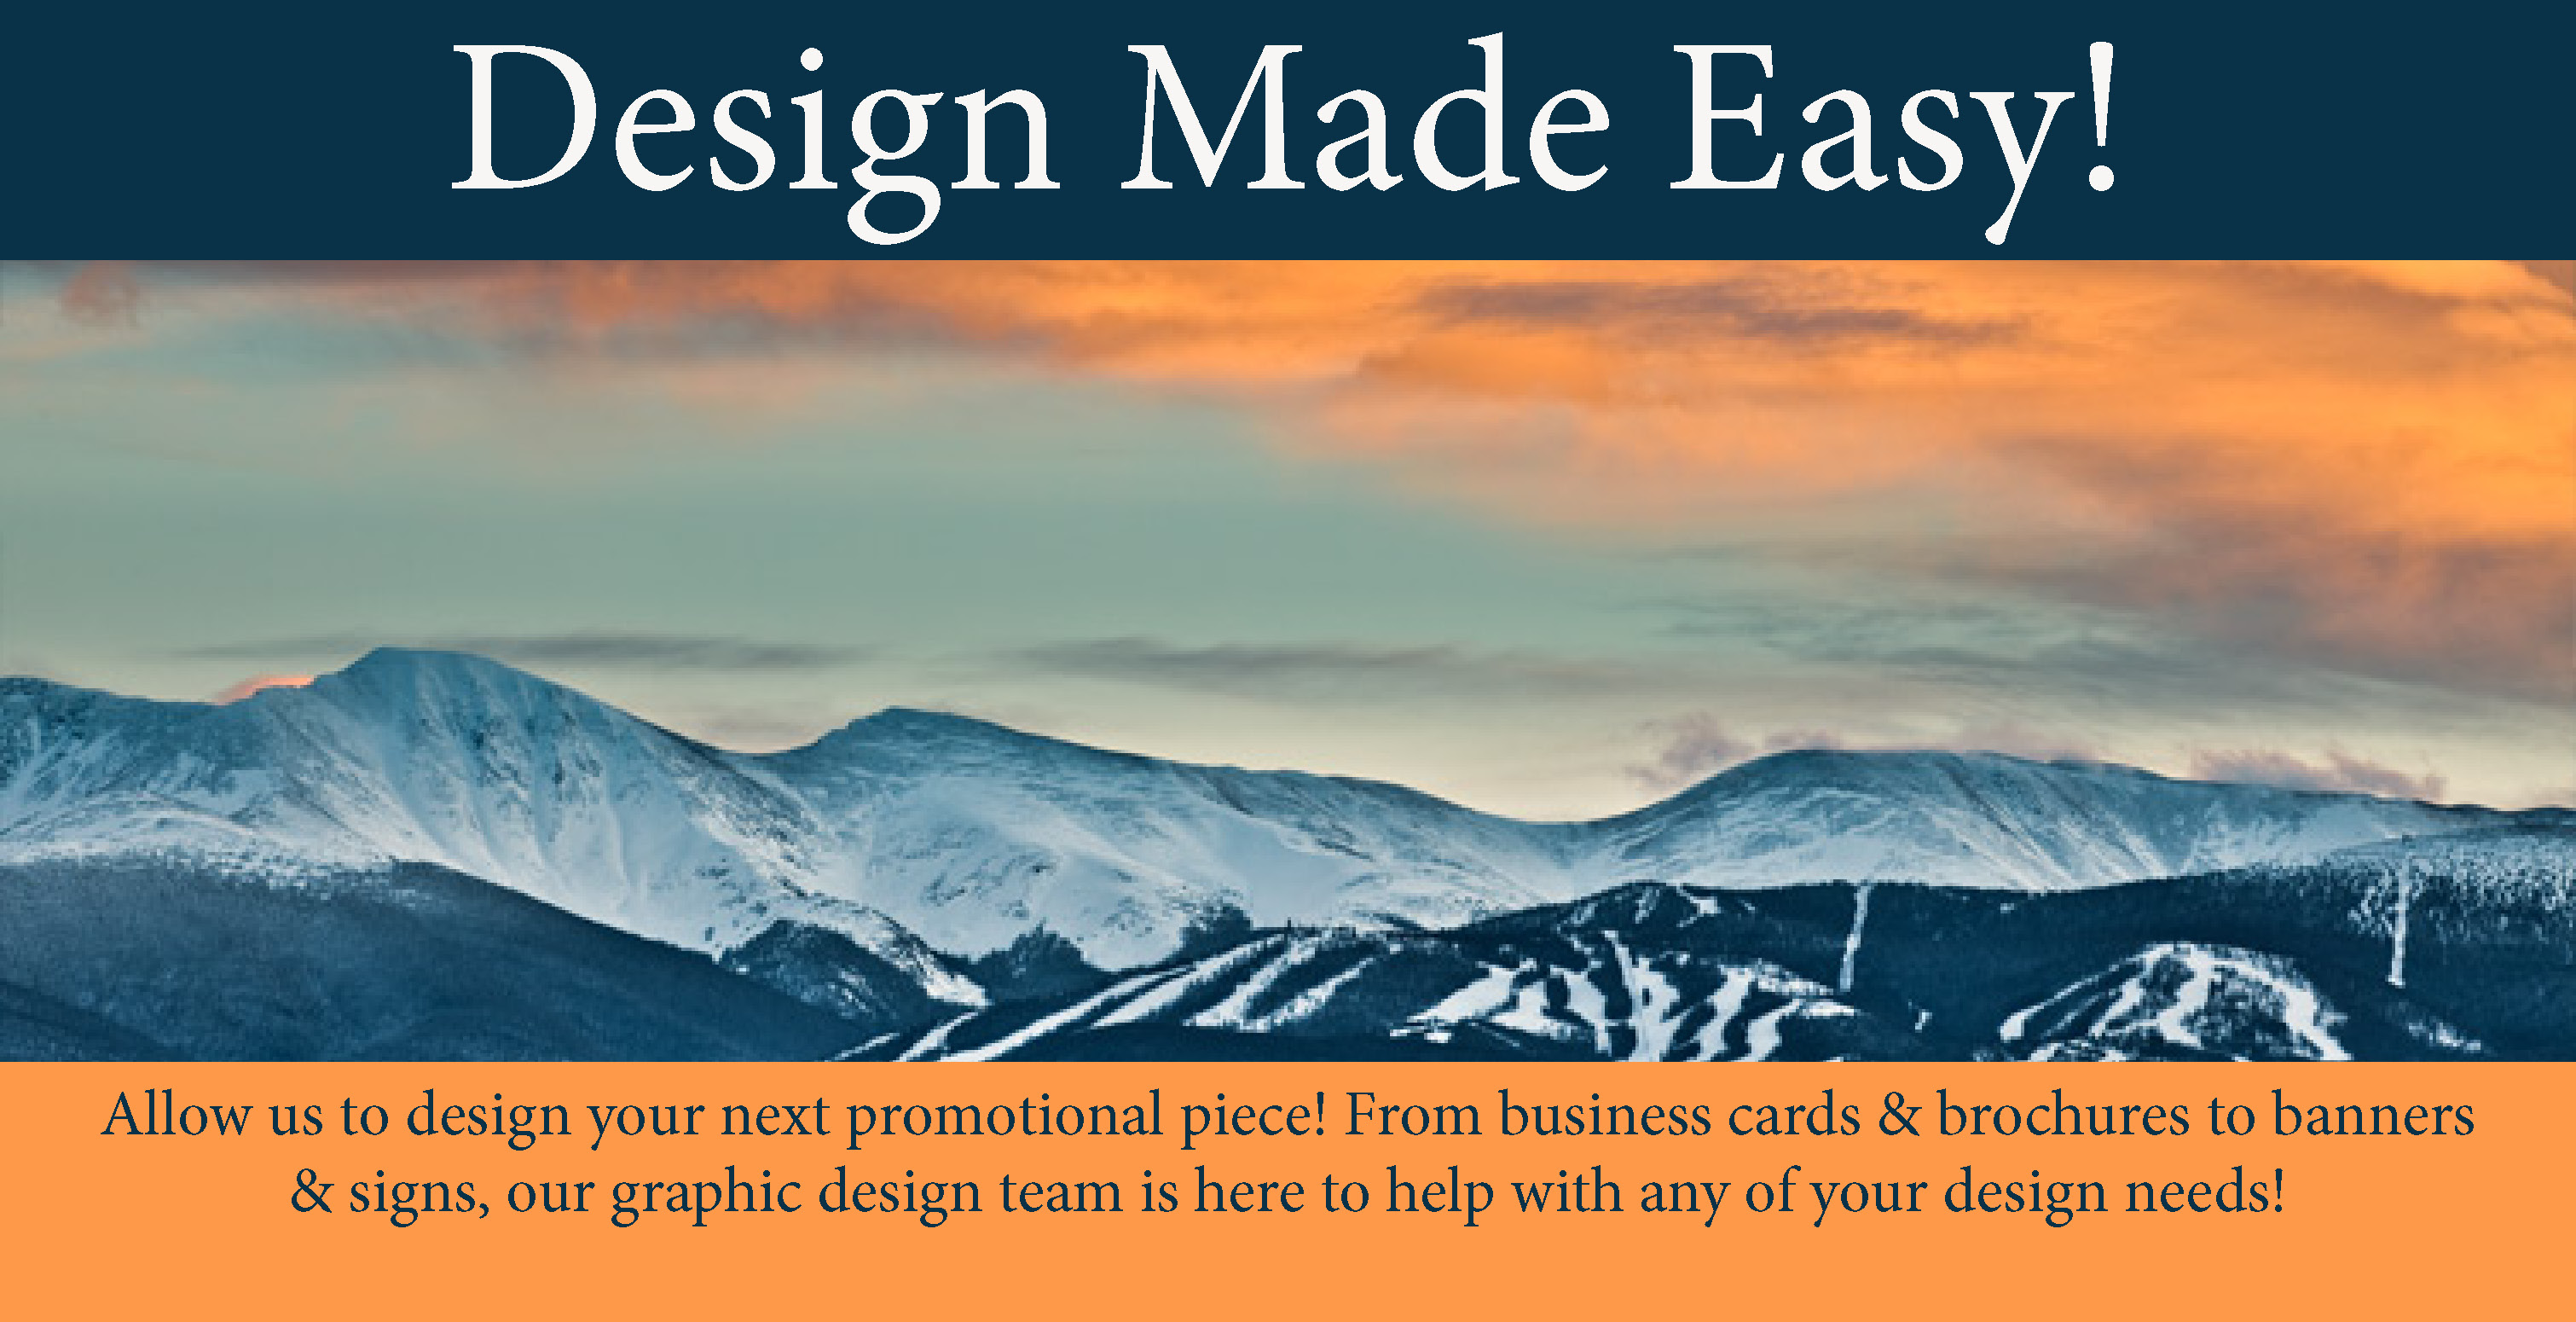 McConnell Printing, Winter Park, Colorado, Printing, Graphic Design, Marketing, Advertising, Digital Printing, Offset Printing, Signs, Banners, Business Cards, Post Cards, mailing Service